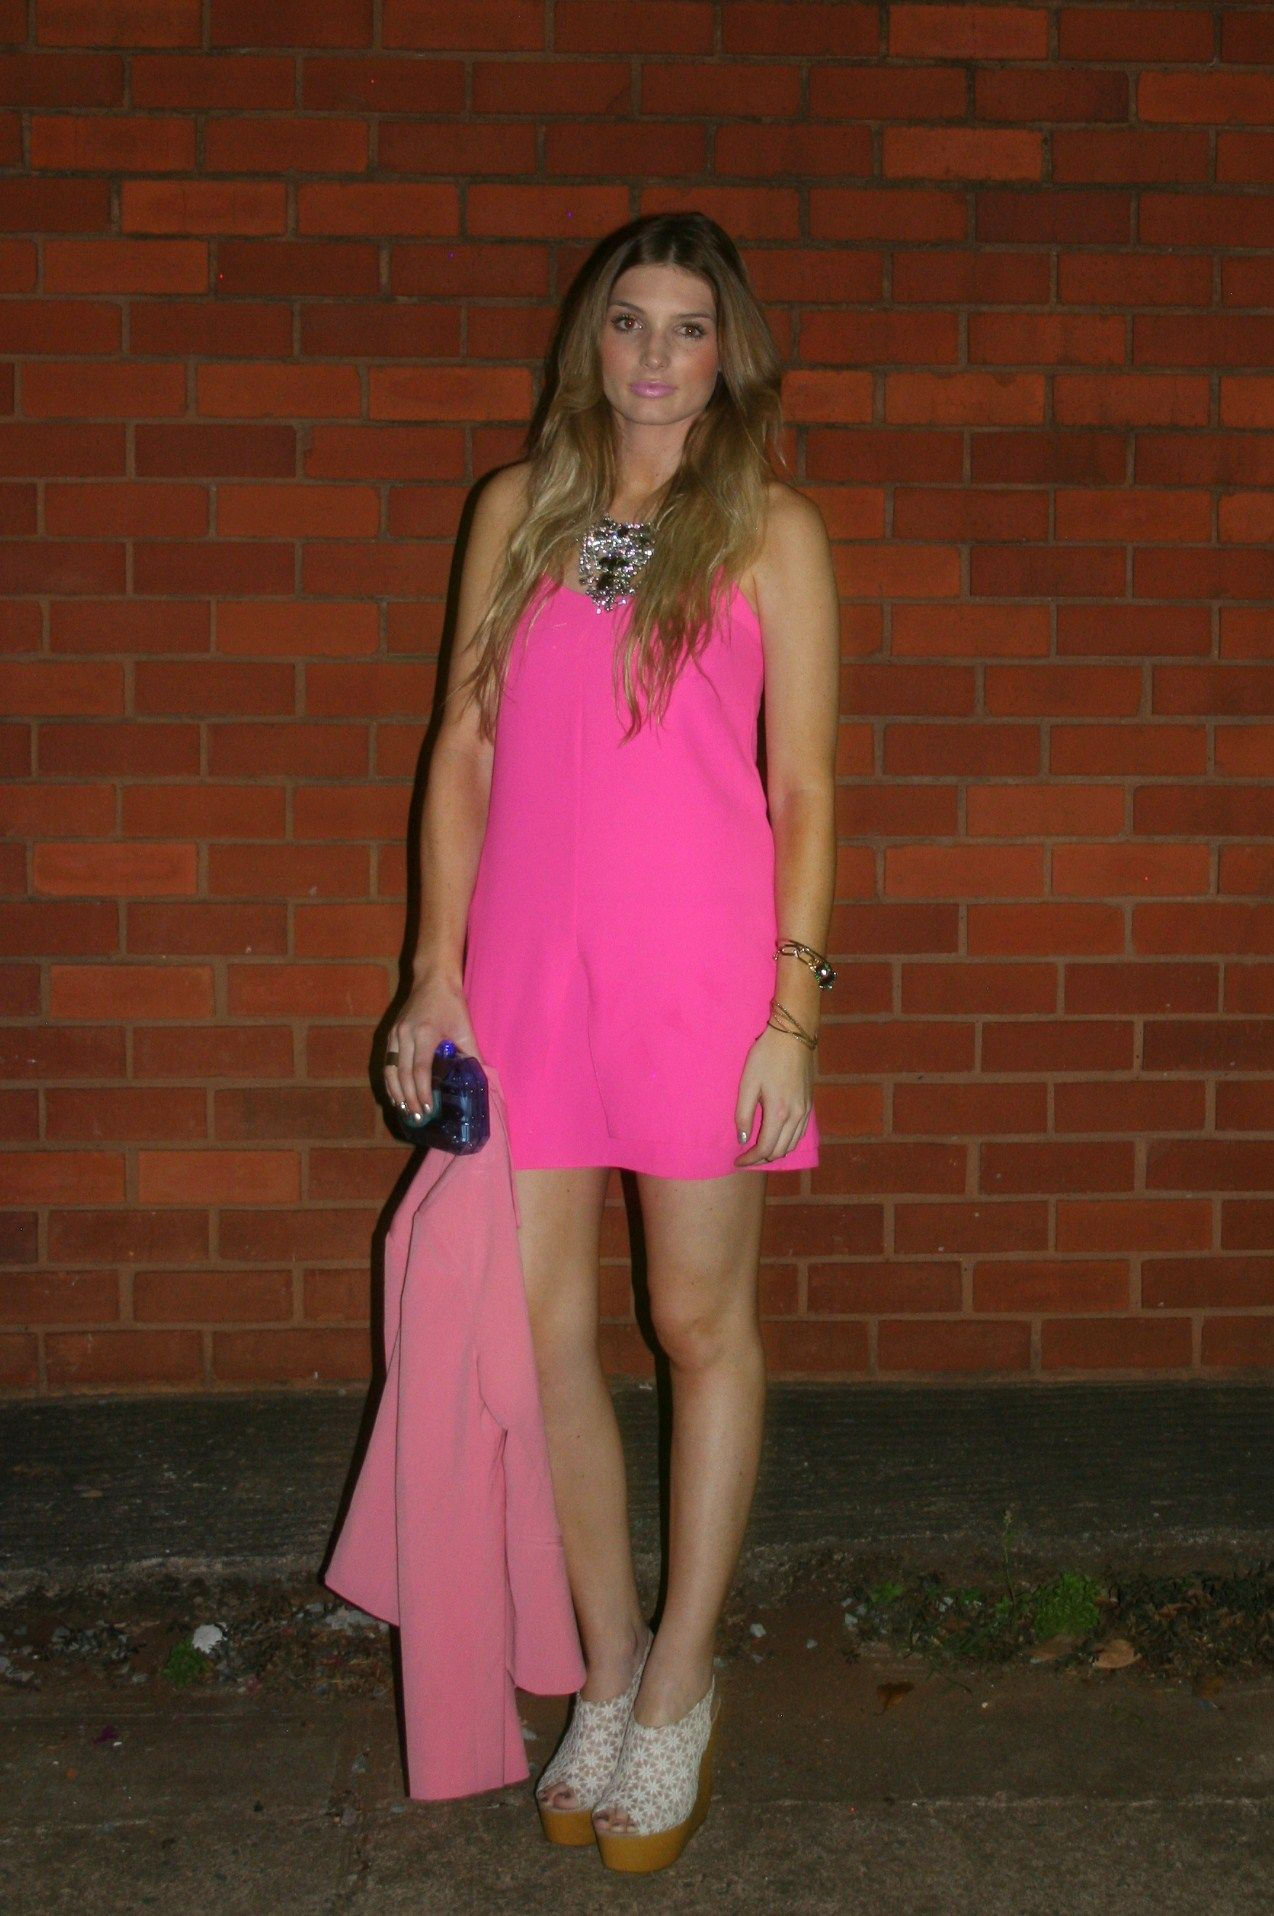 What I wore to the DUT Fashion Show - Topshop Slip Dress, Call It Spring Wedges, Zara Perspex Clutch- My beautiful friend Tash.